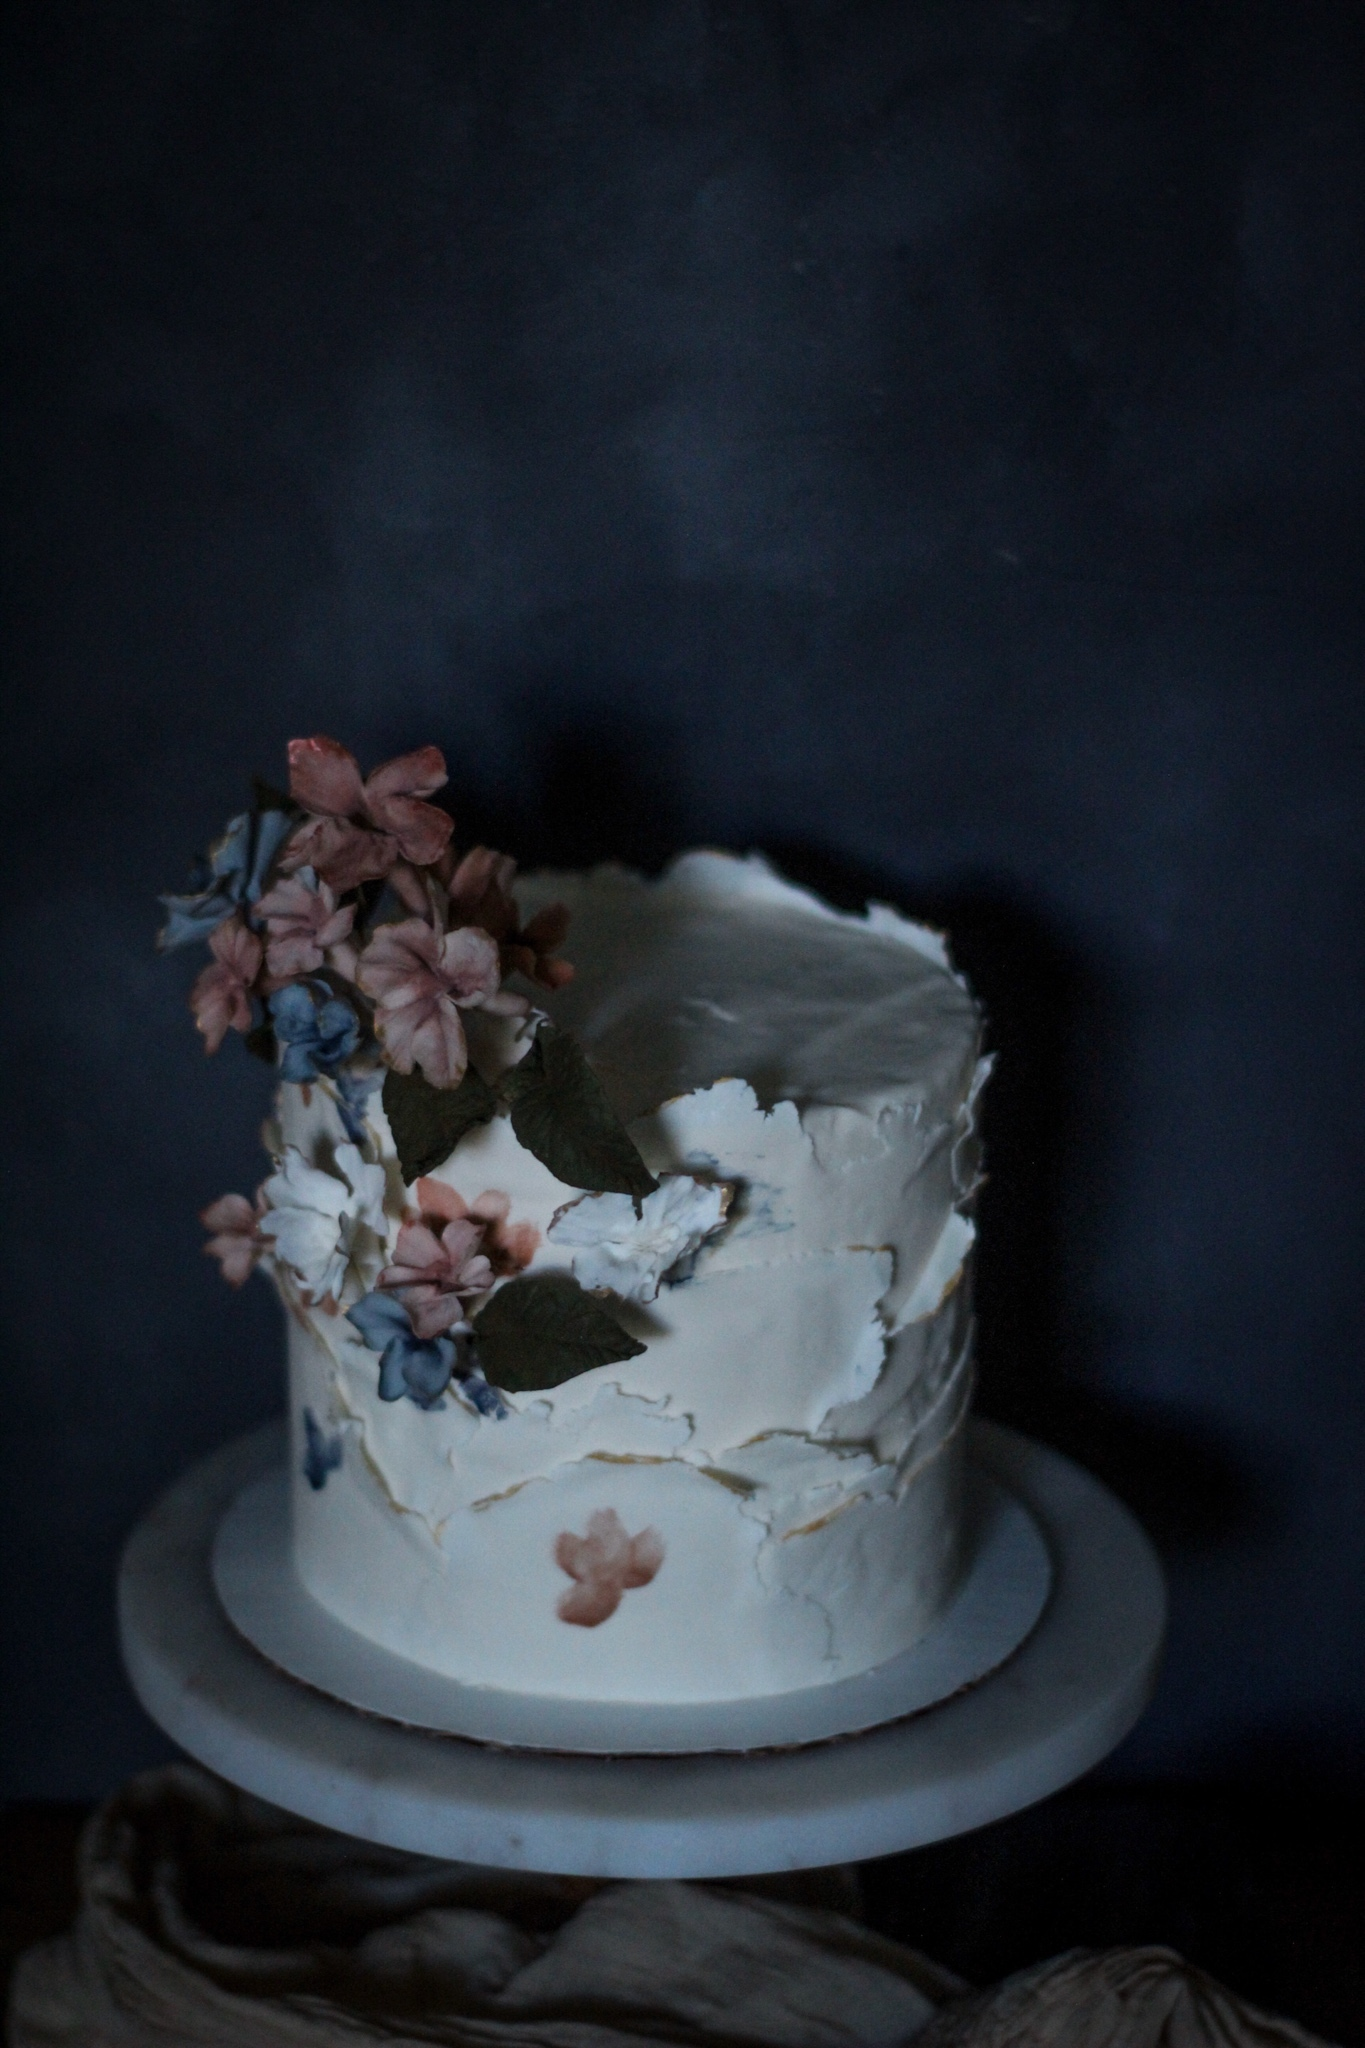 White Bas relief fondant cake with sugar flowers